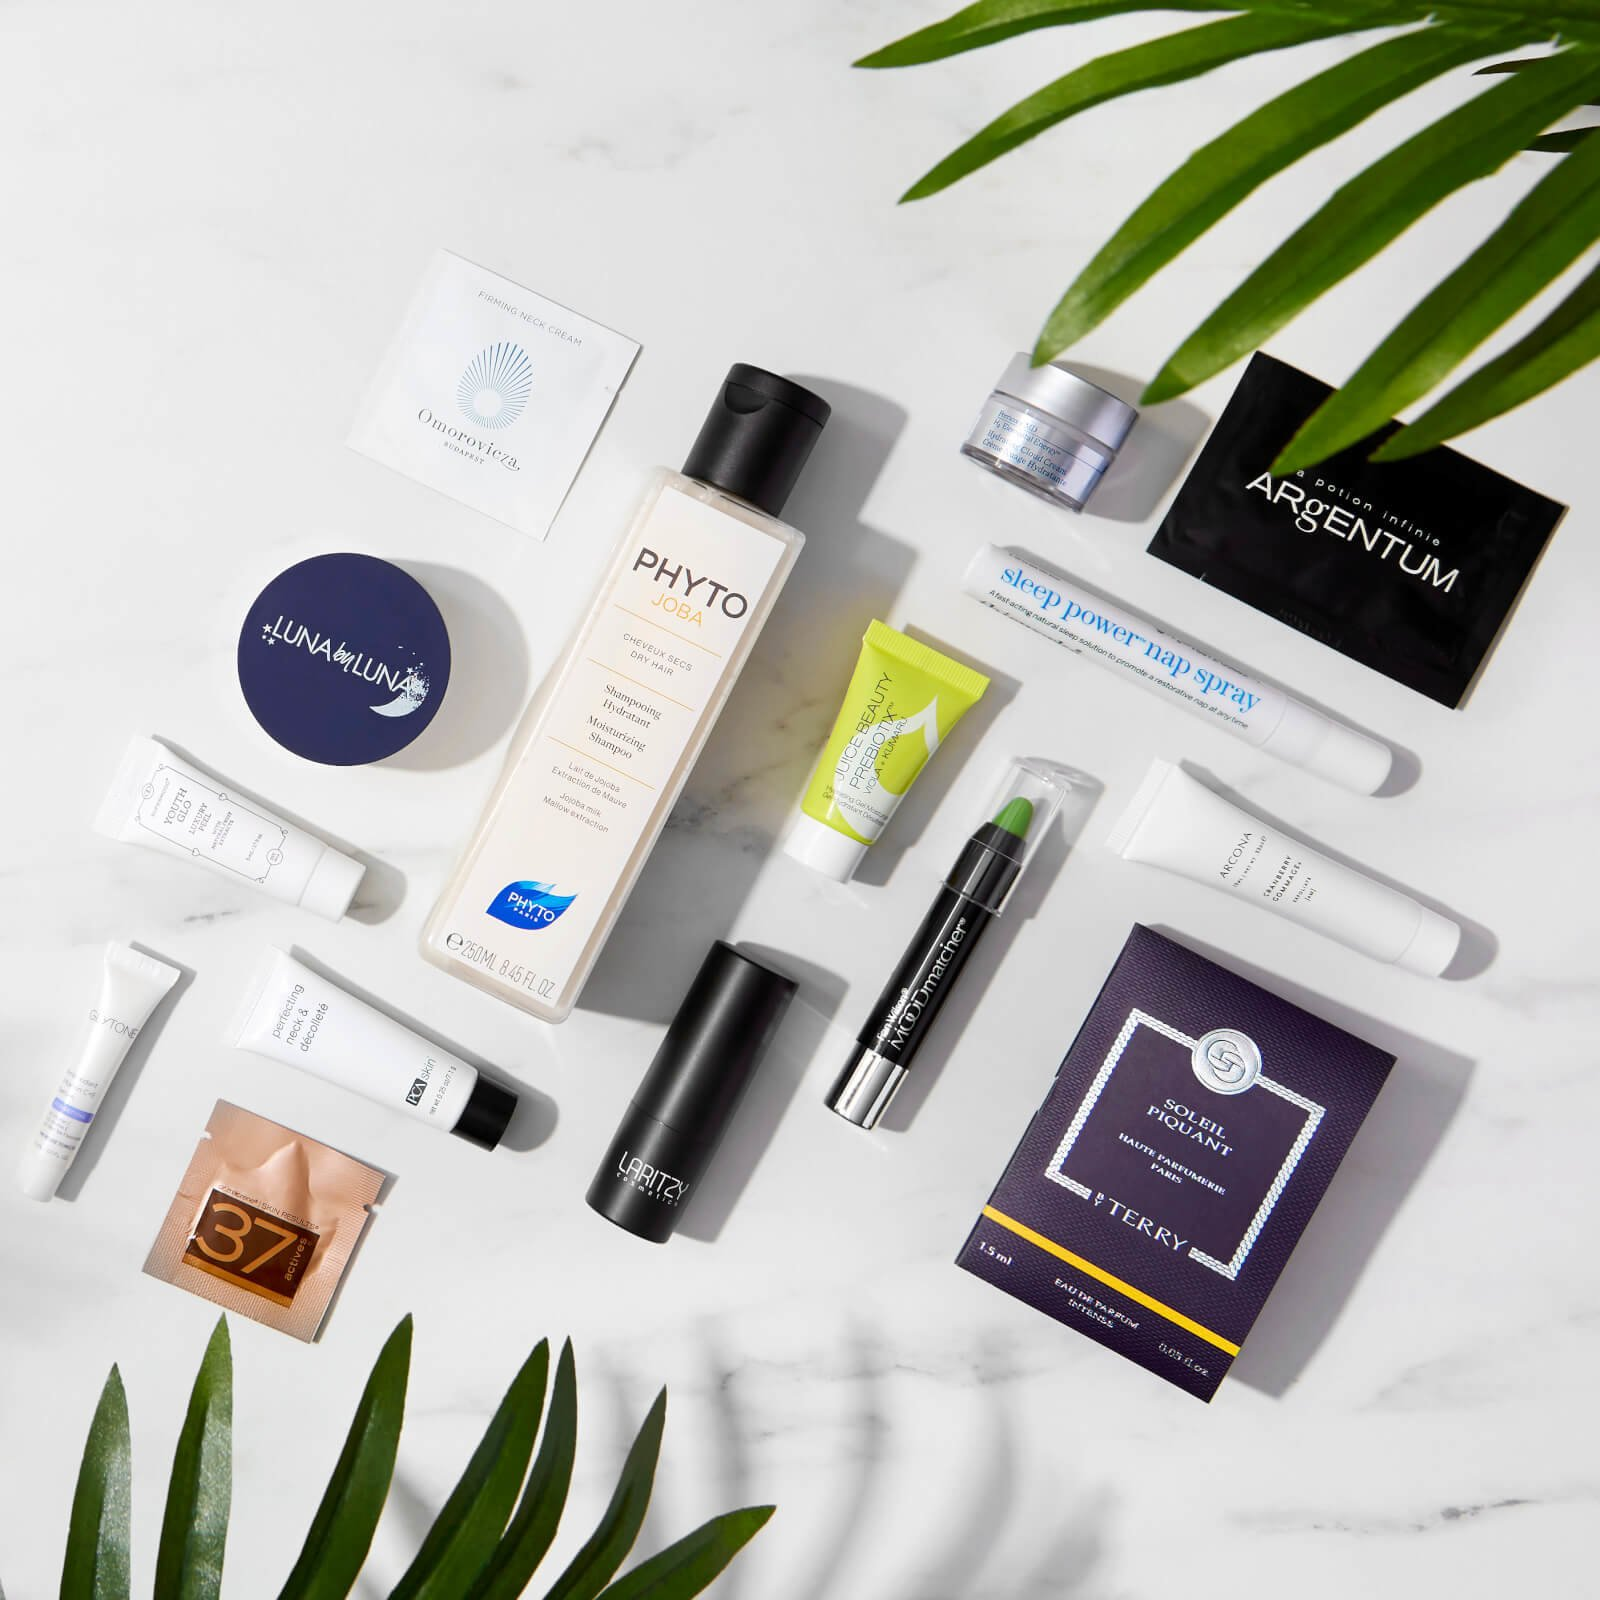 Skinstore products